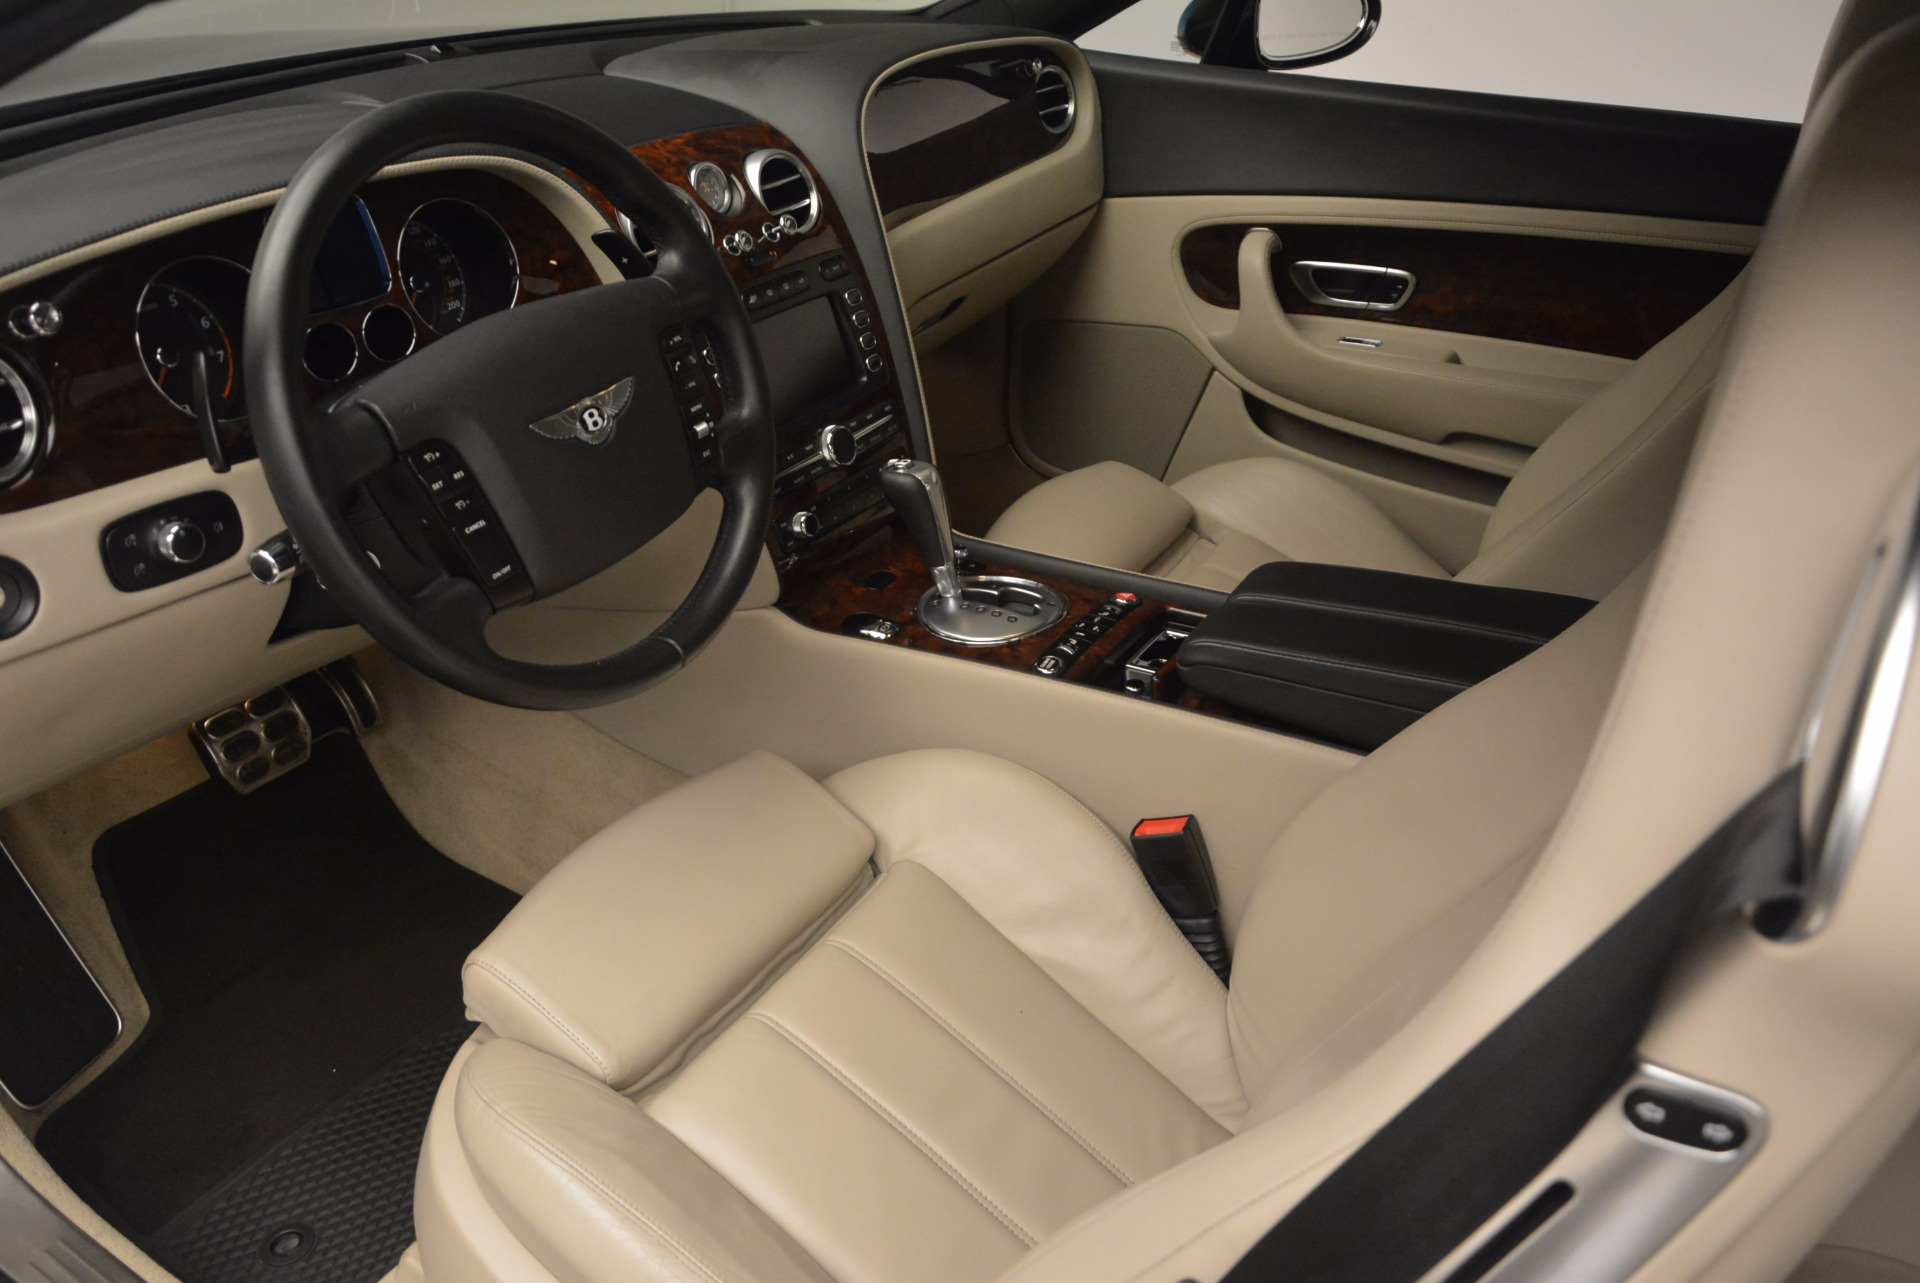 Used 2005 Bentley Continental GT W12 For Sale In Westport, CT 1677_p18